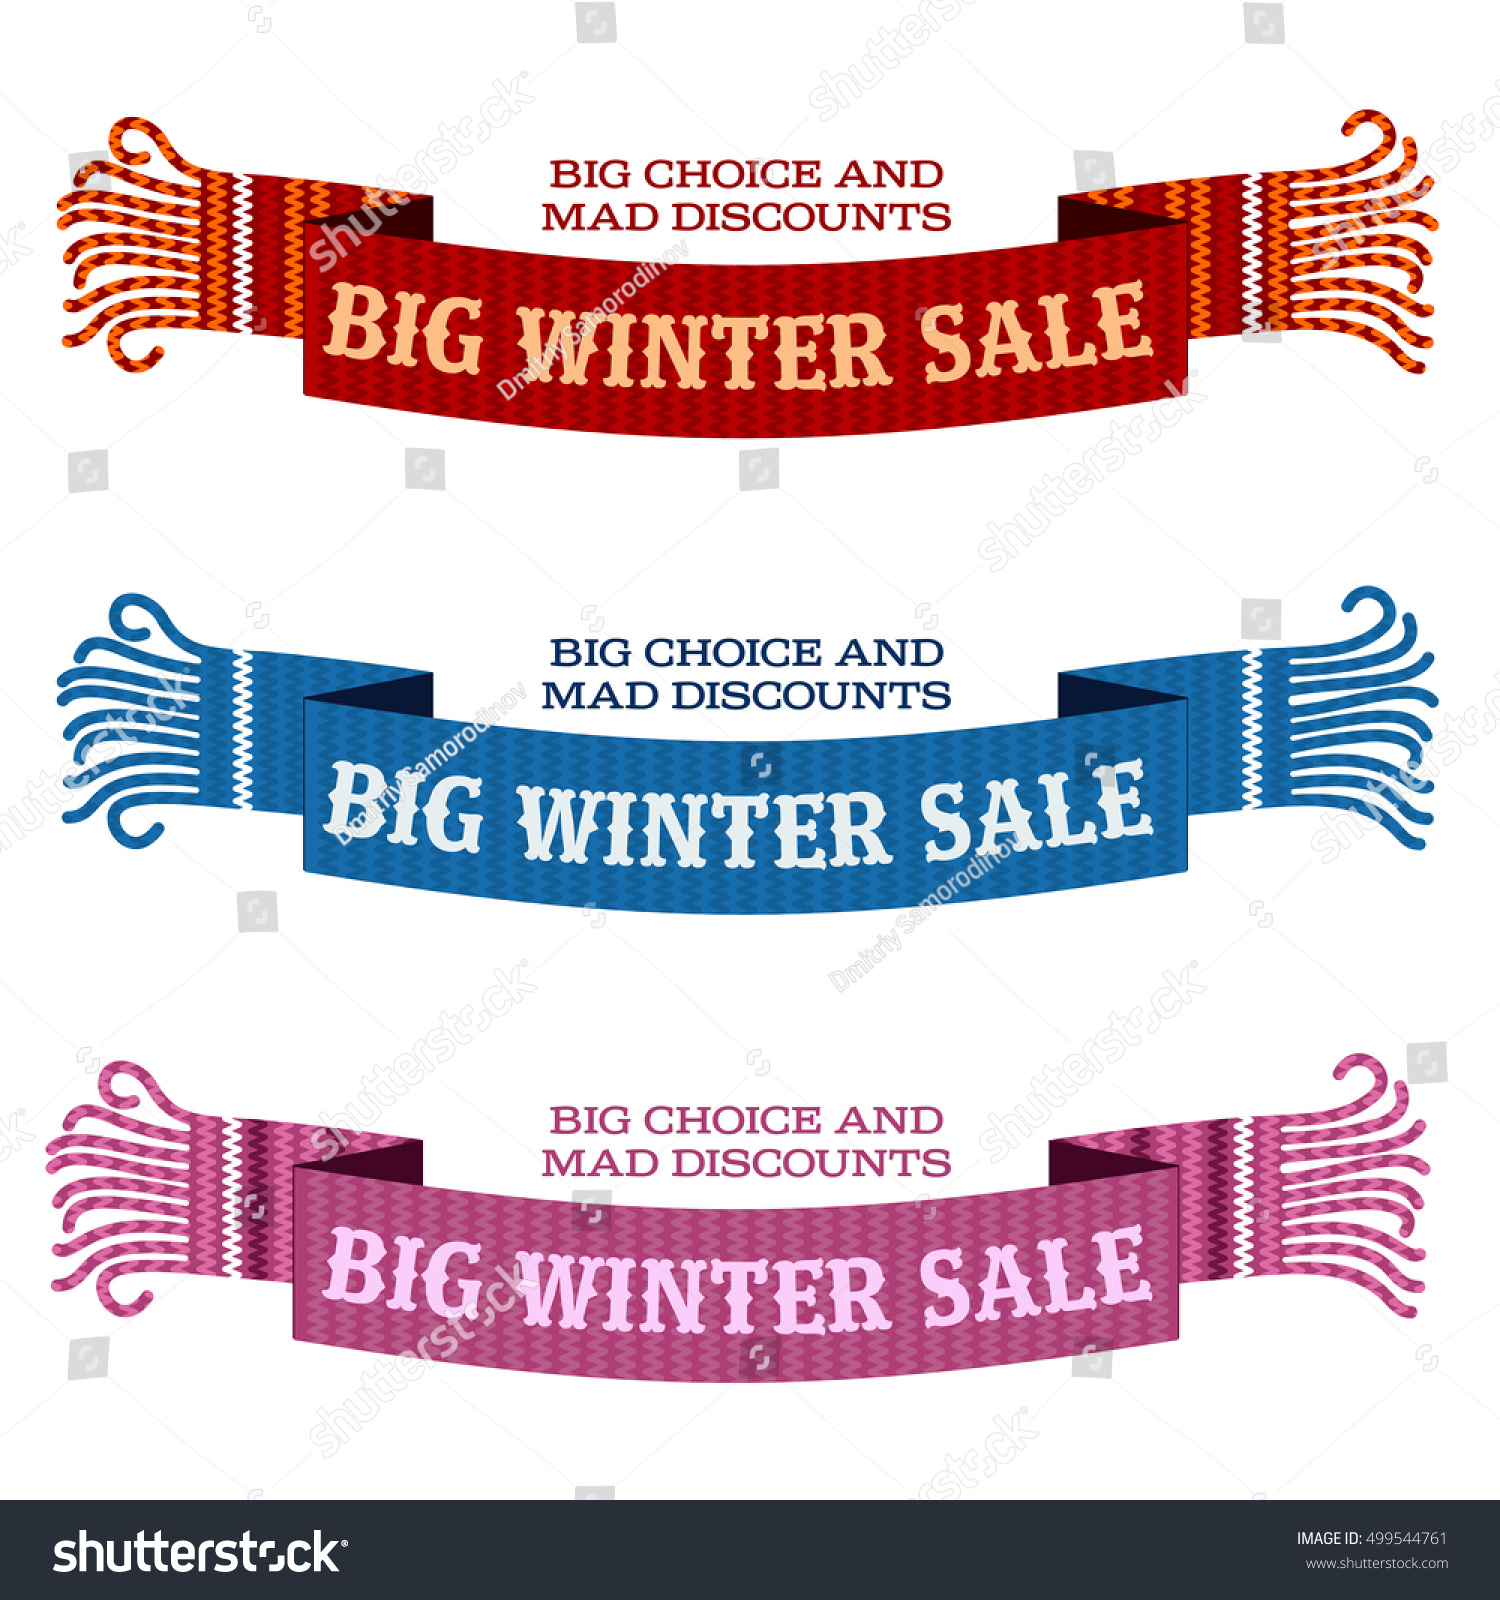 100 free reiki certificate templates massage vectors photos free reiki certificate templates winter sale labels banner winter sale stock vector 499544761 yadclub Gallery